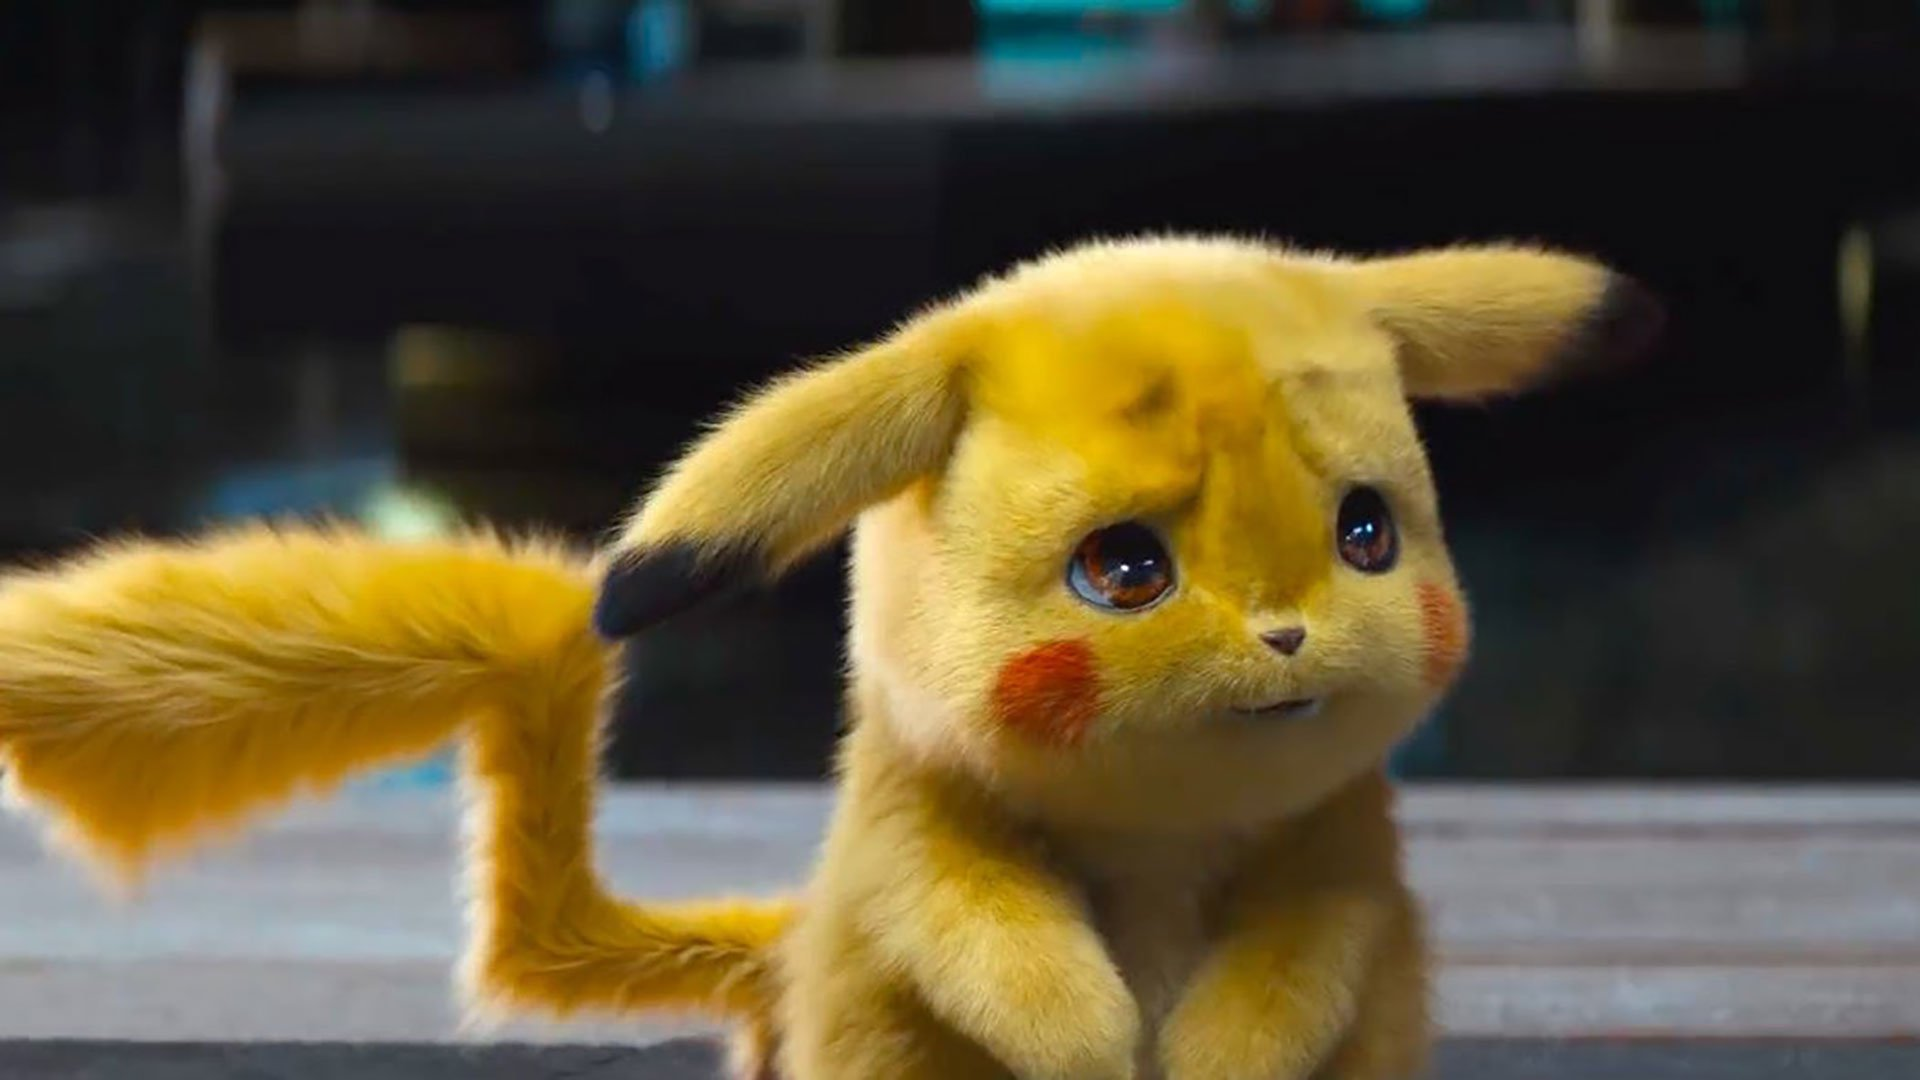 Frowning Detective Pikachu